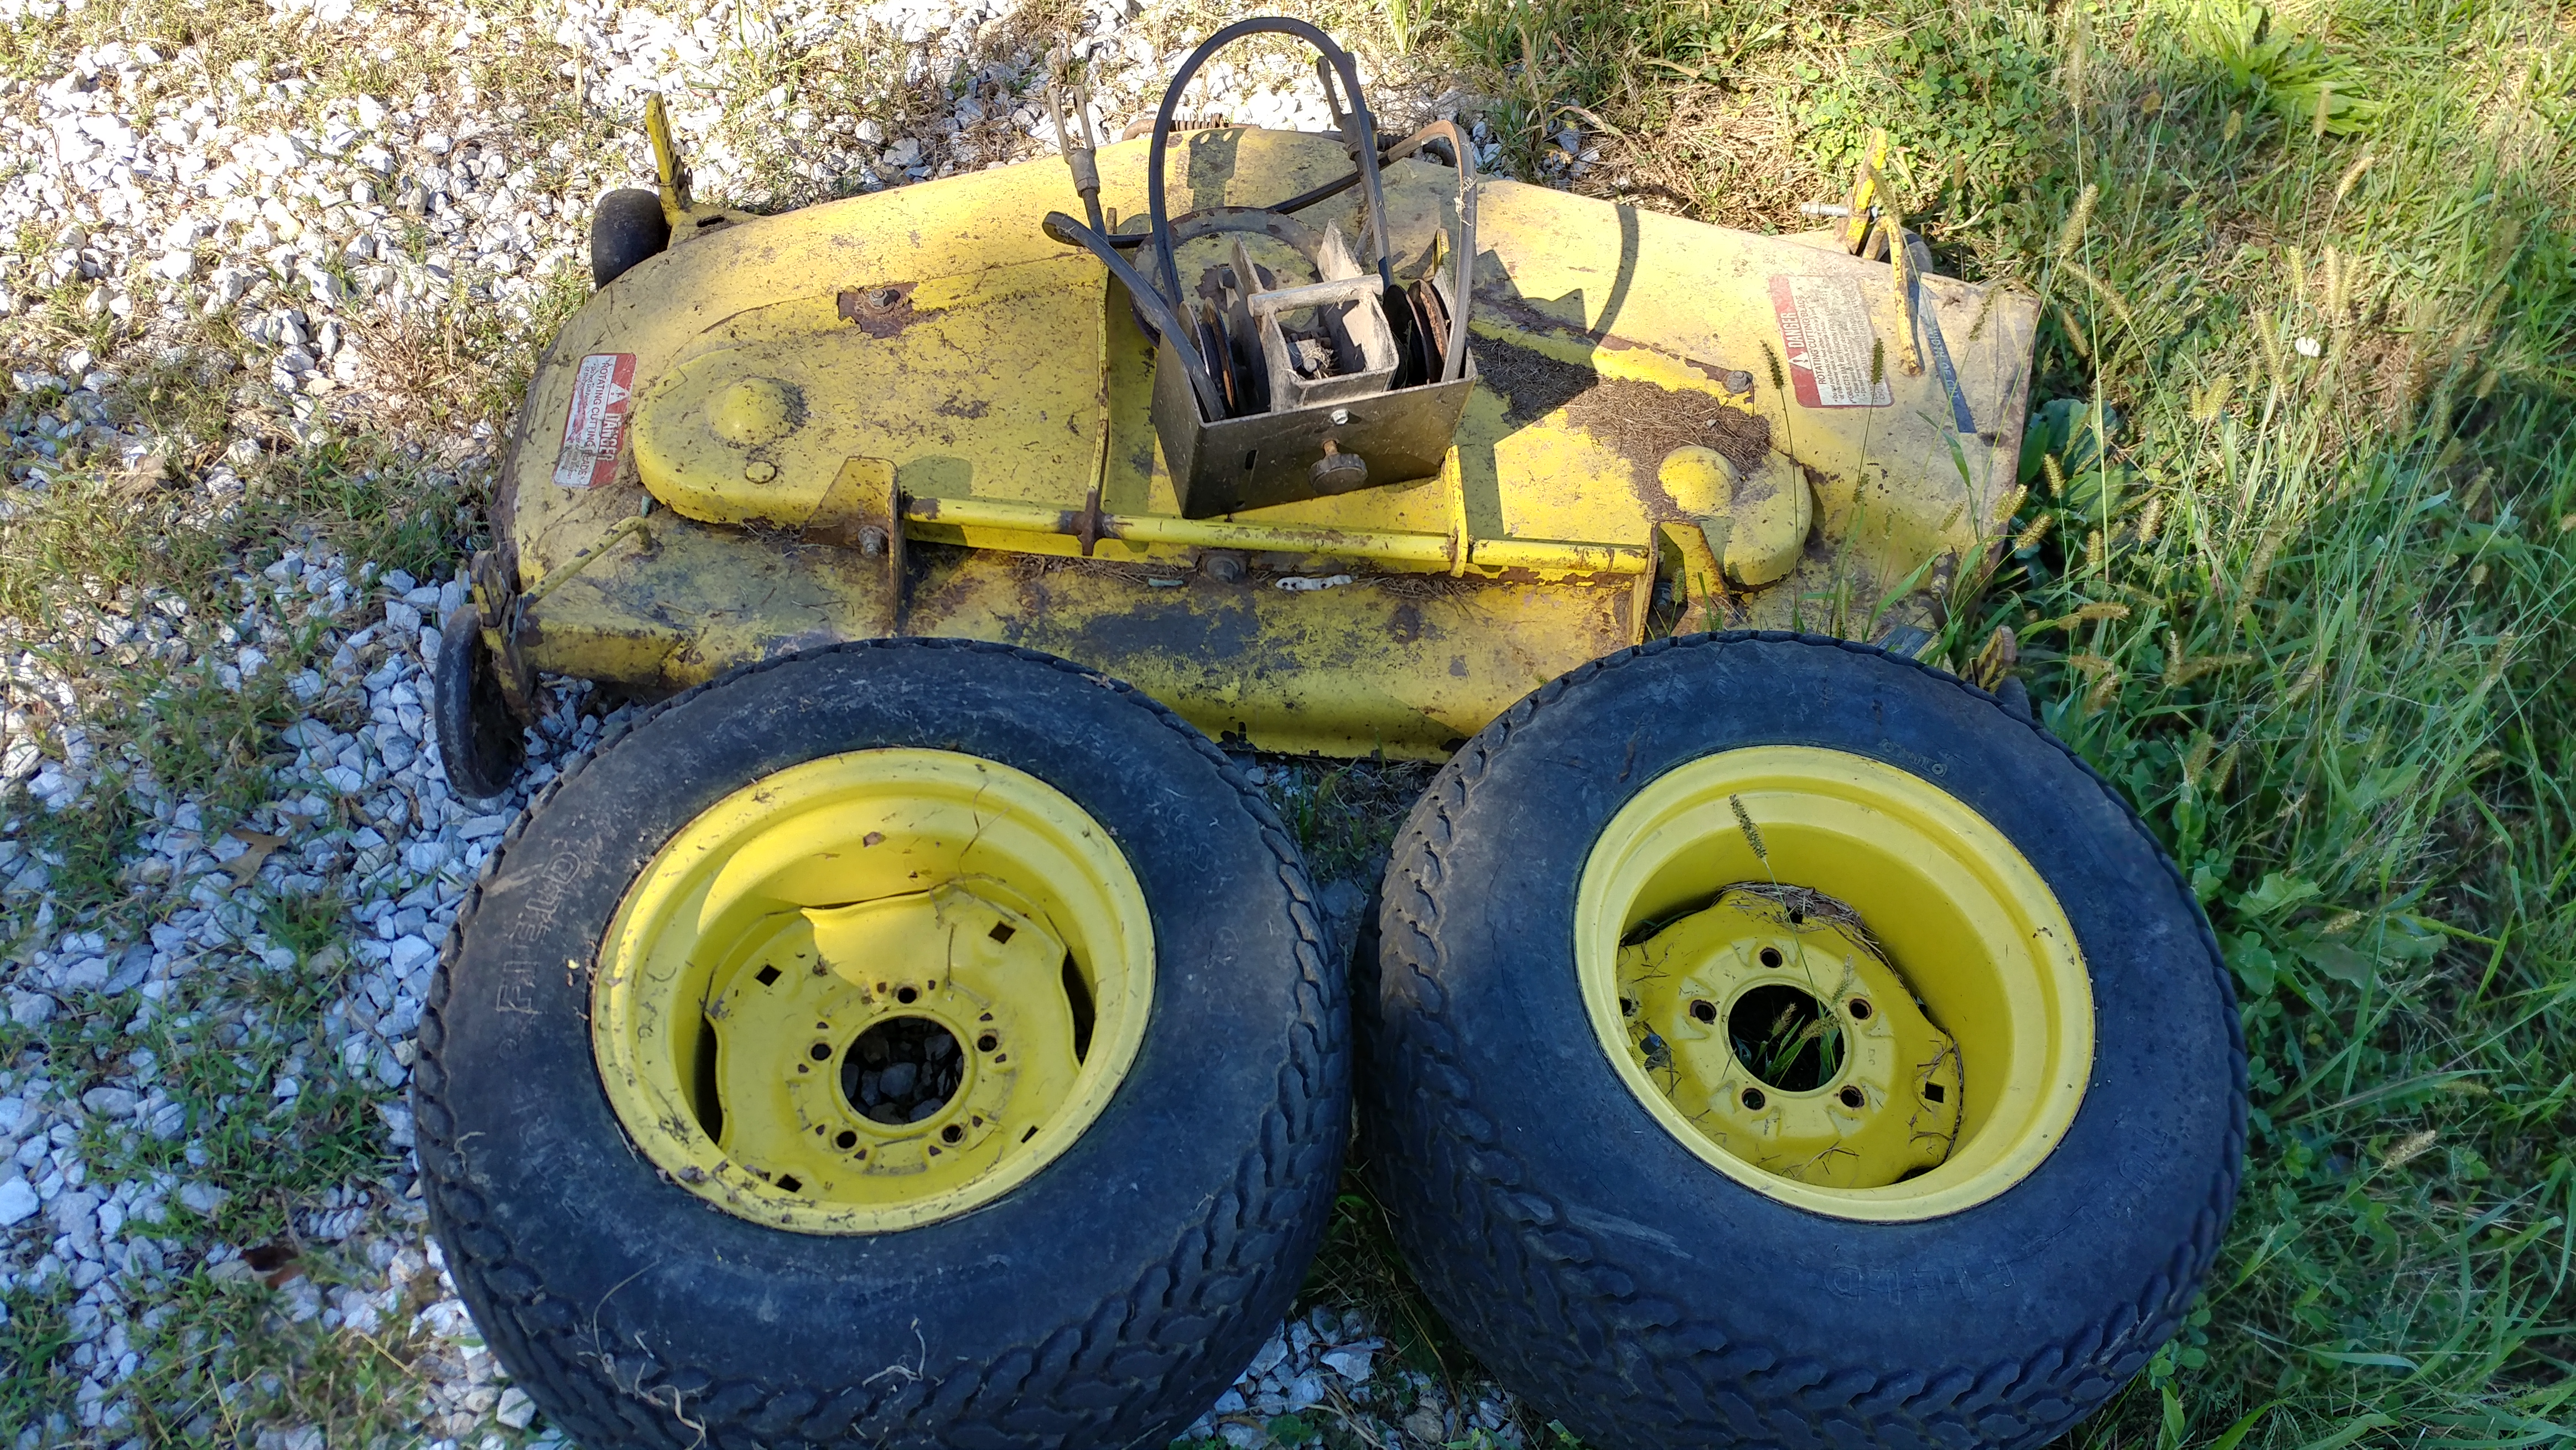 Click image for larger version.  Name:DECK TIRES1.jpg Views:5 Size:6.28 MB ID:655638